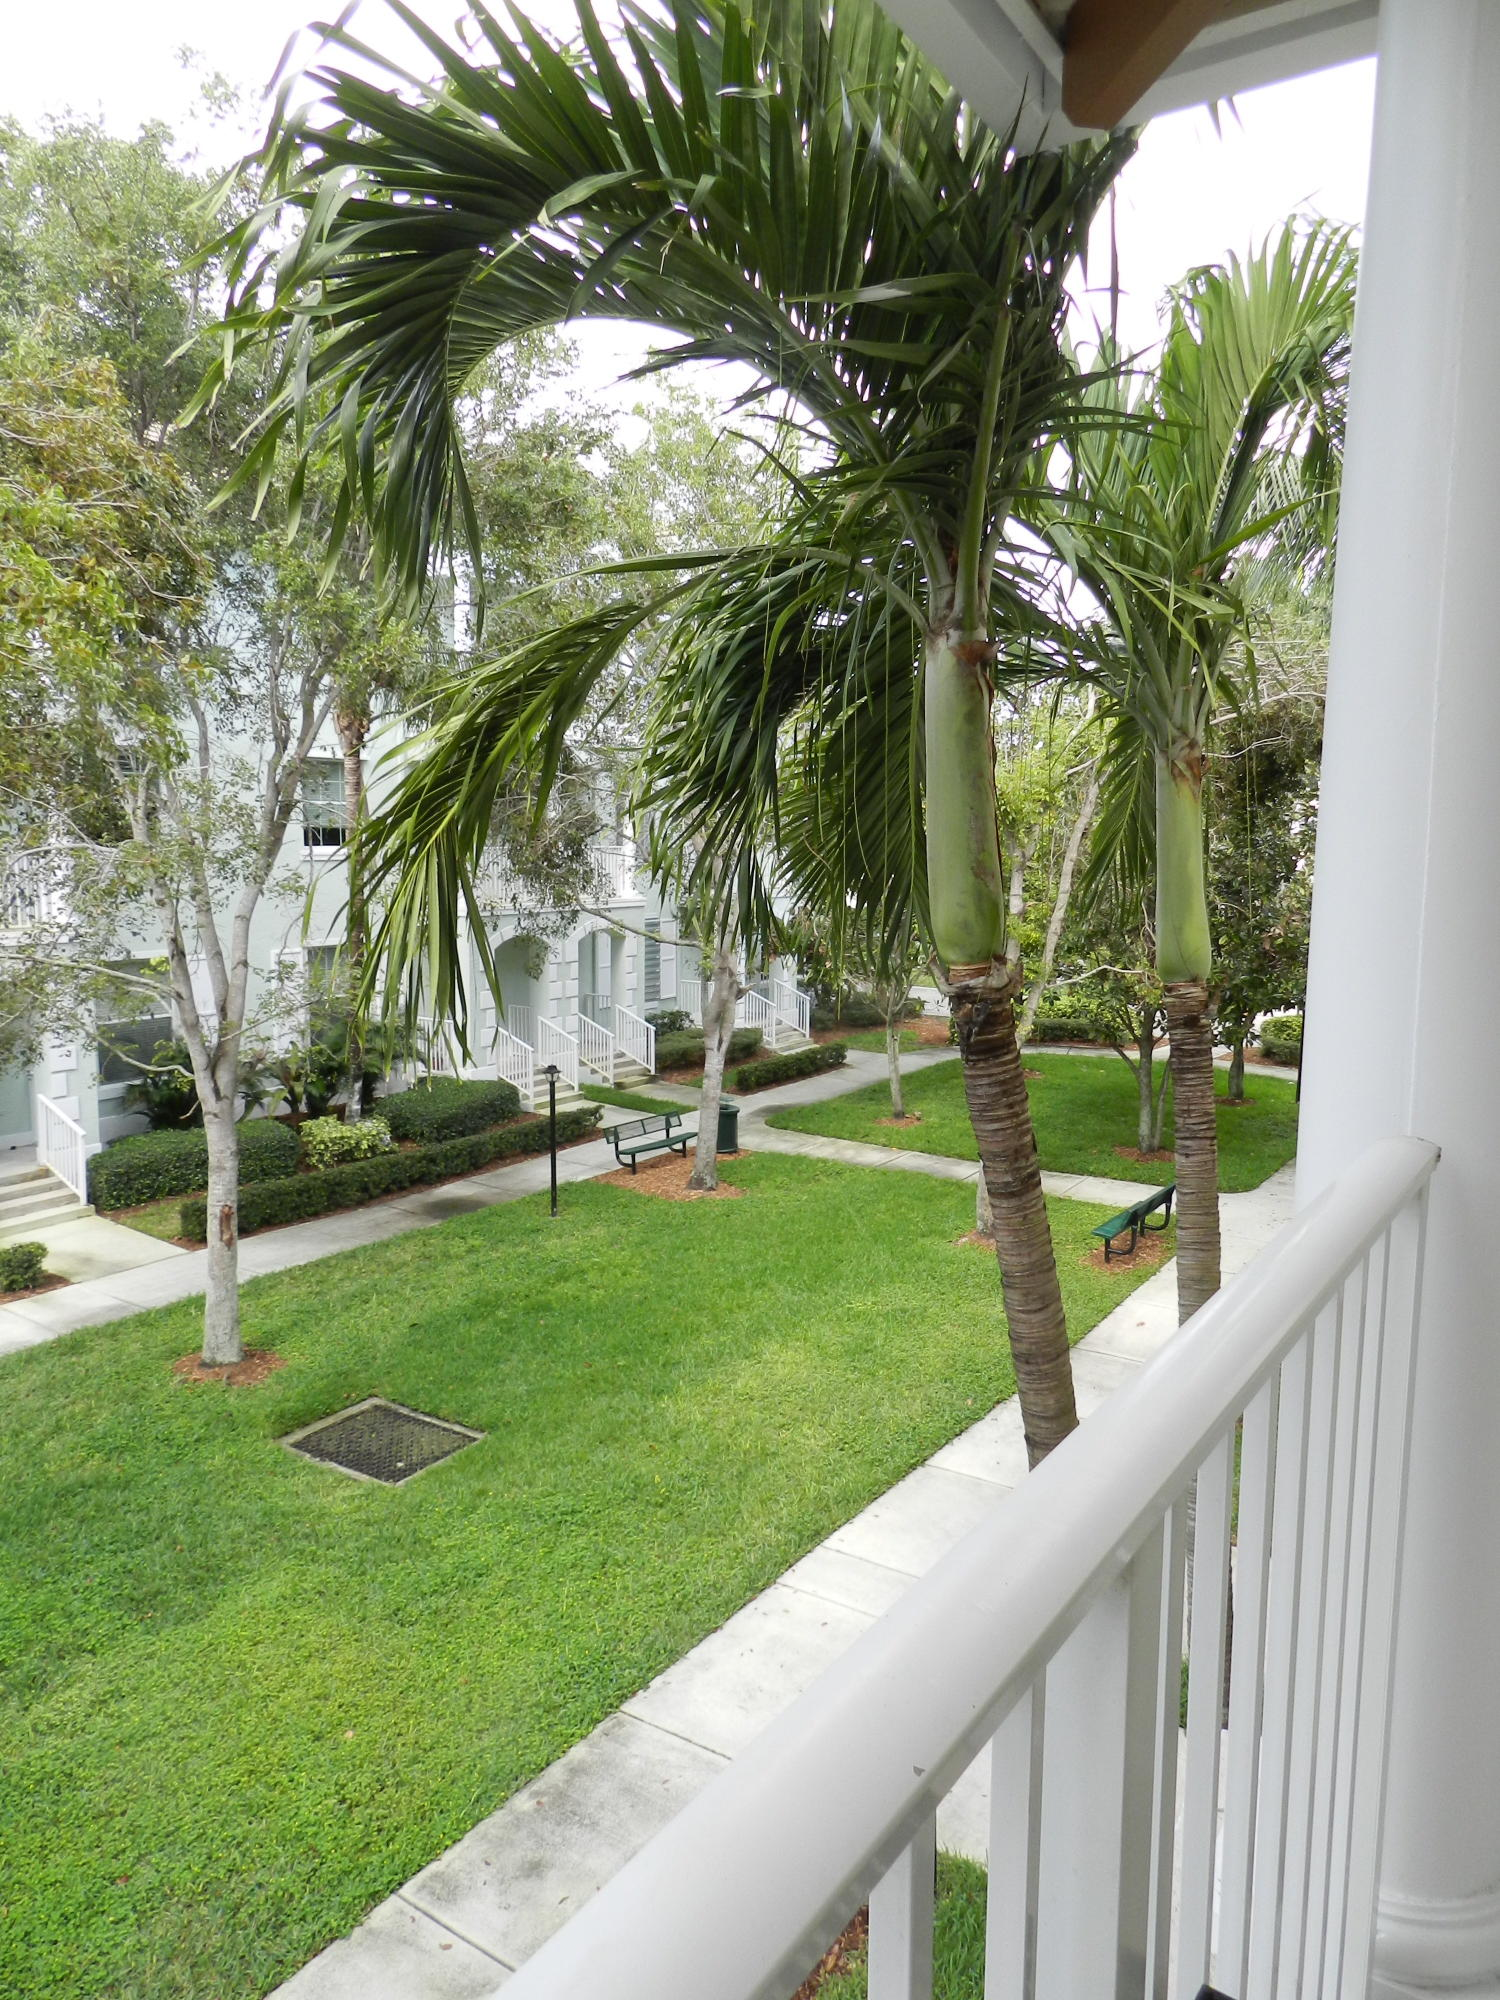 4320 Blowing Point Place, Jupiter, Florida 33458, 3 Bedrooms Bedrooms, ,3.1 BathroomsBathrooms,F,Townhouse,Blowing Point,RX-10492351